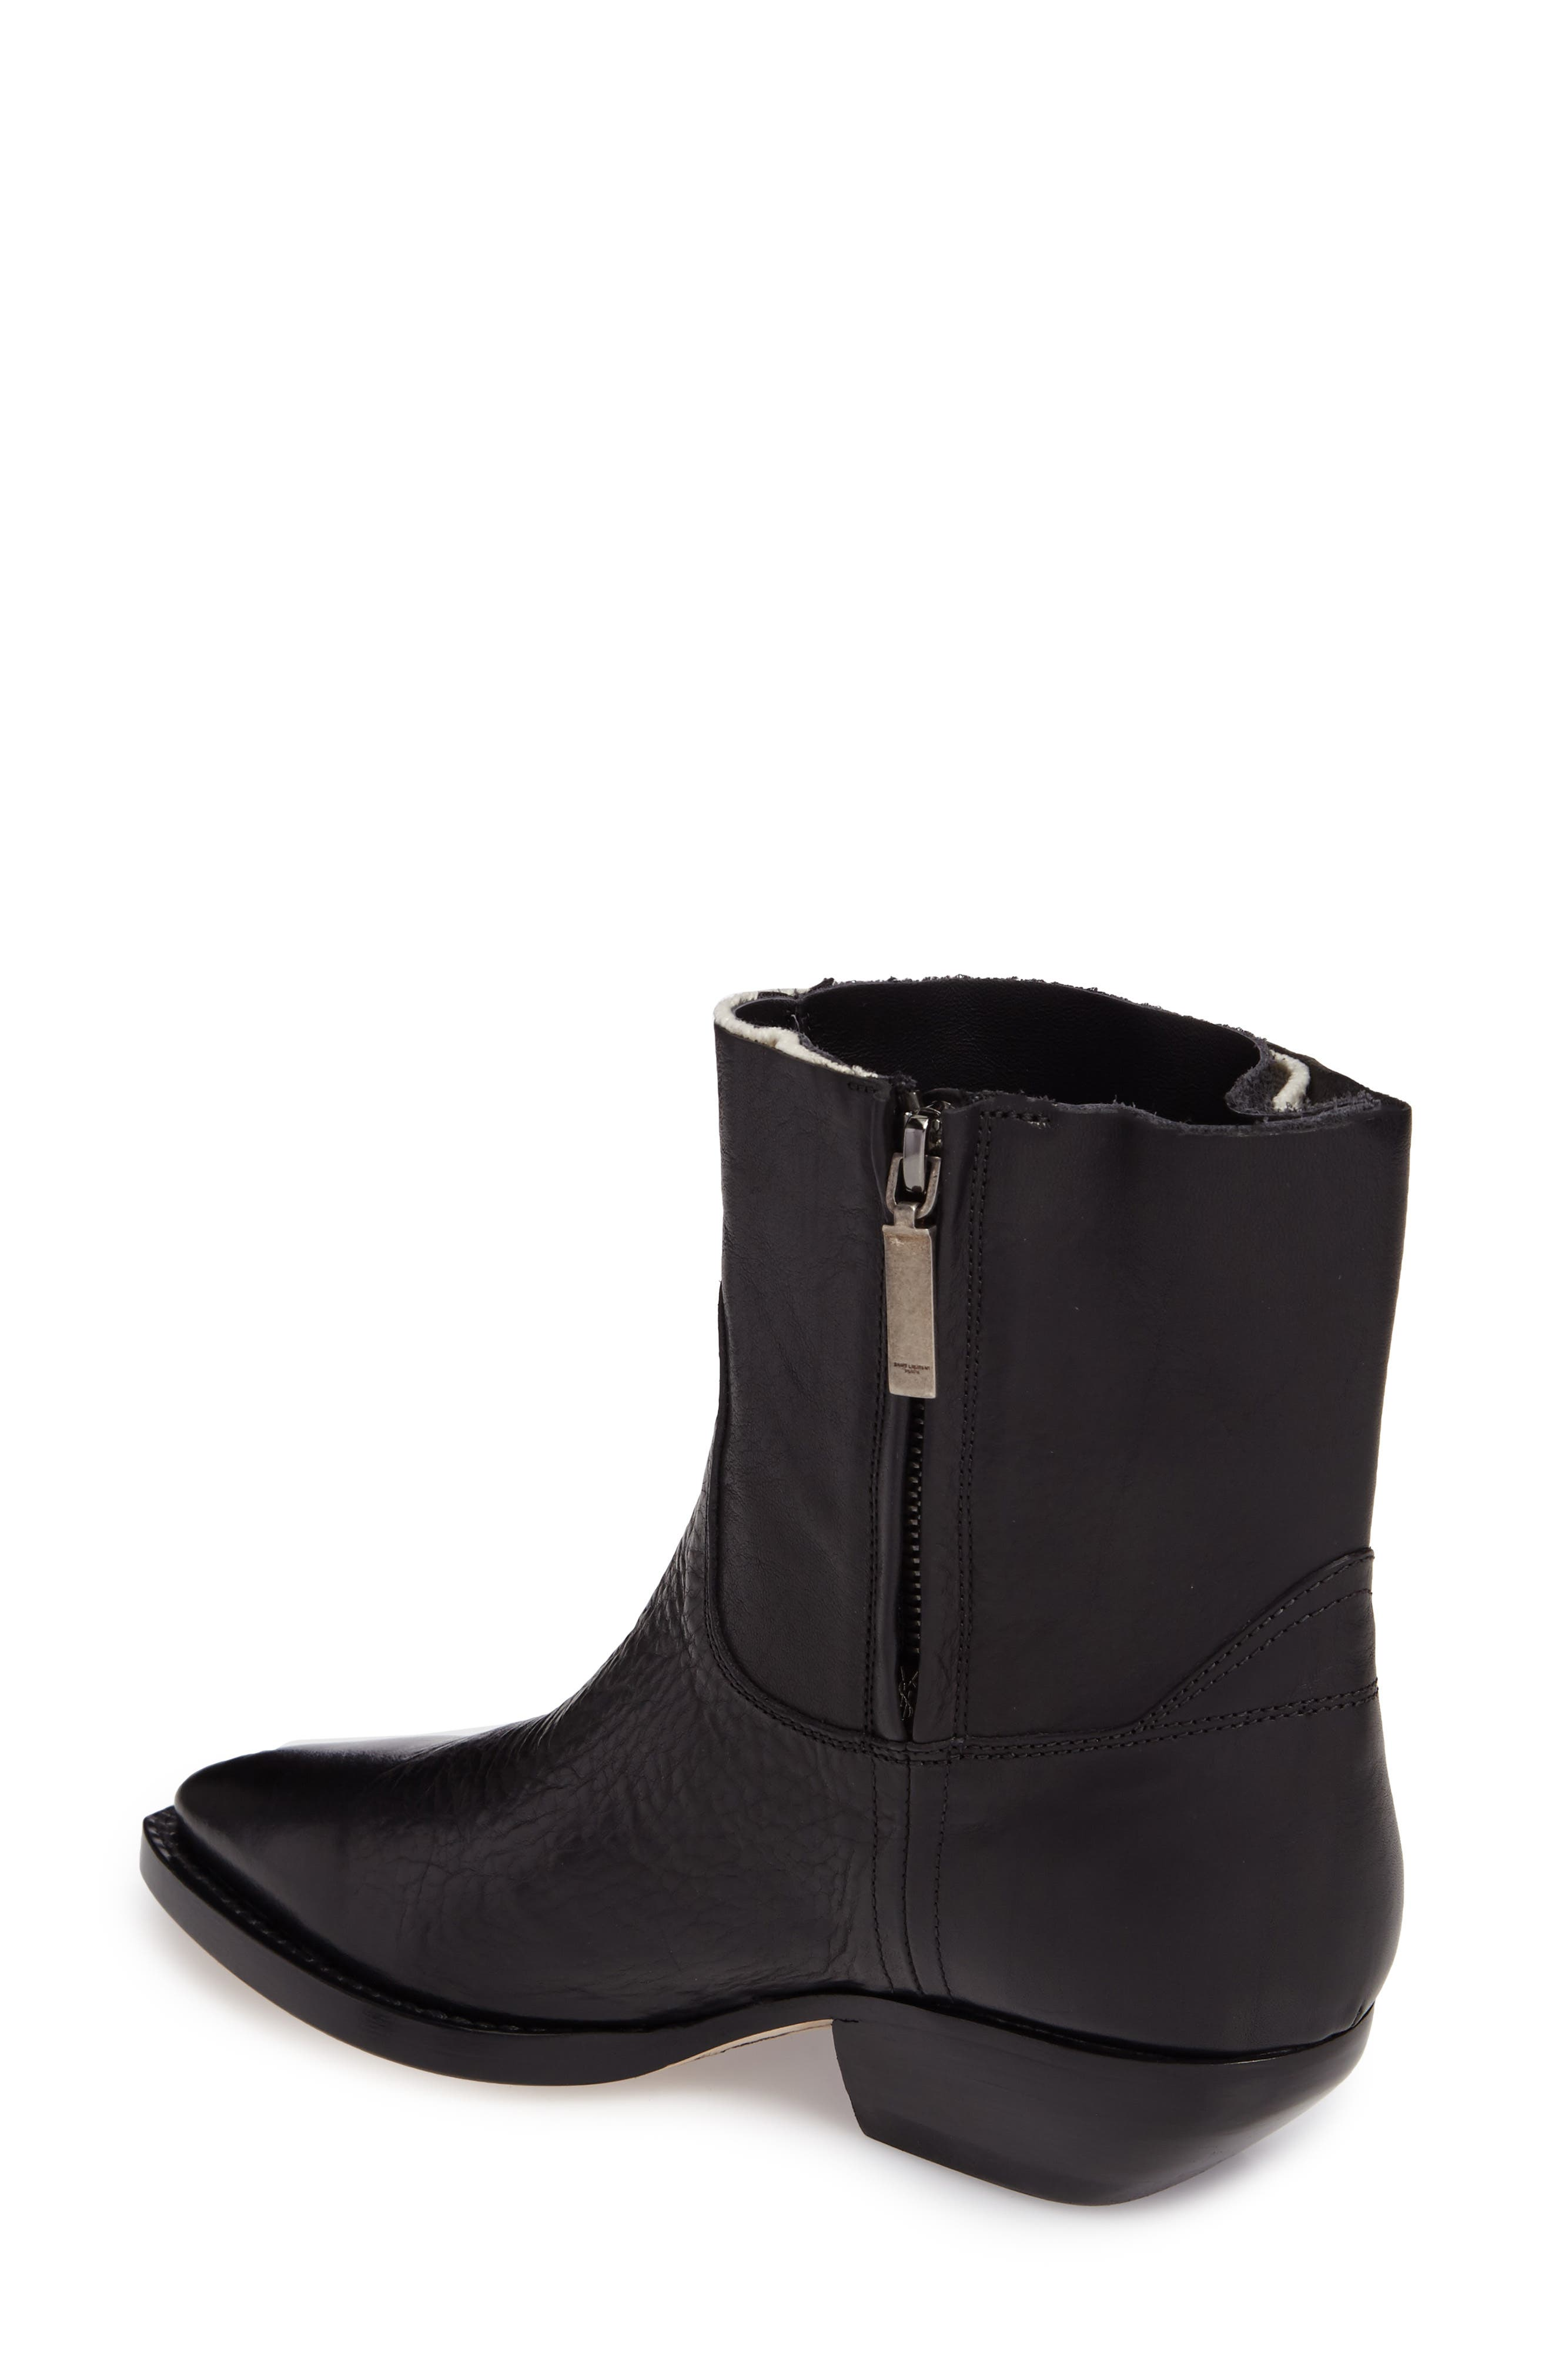 Theo Eli Western Bootie,                             Alternate thumbnail 2, color,                             001